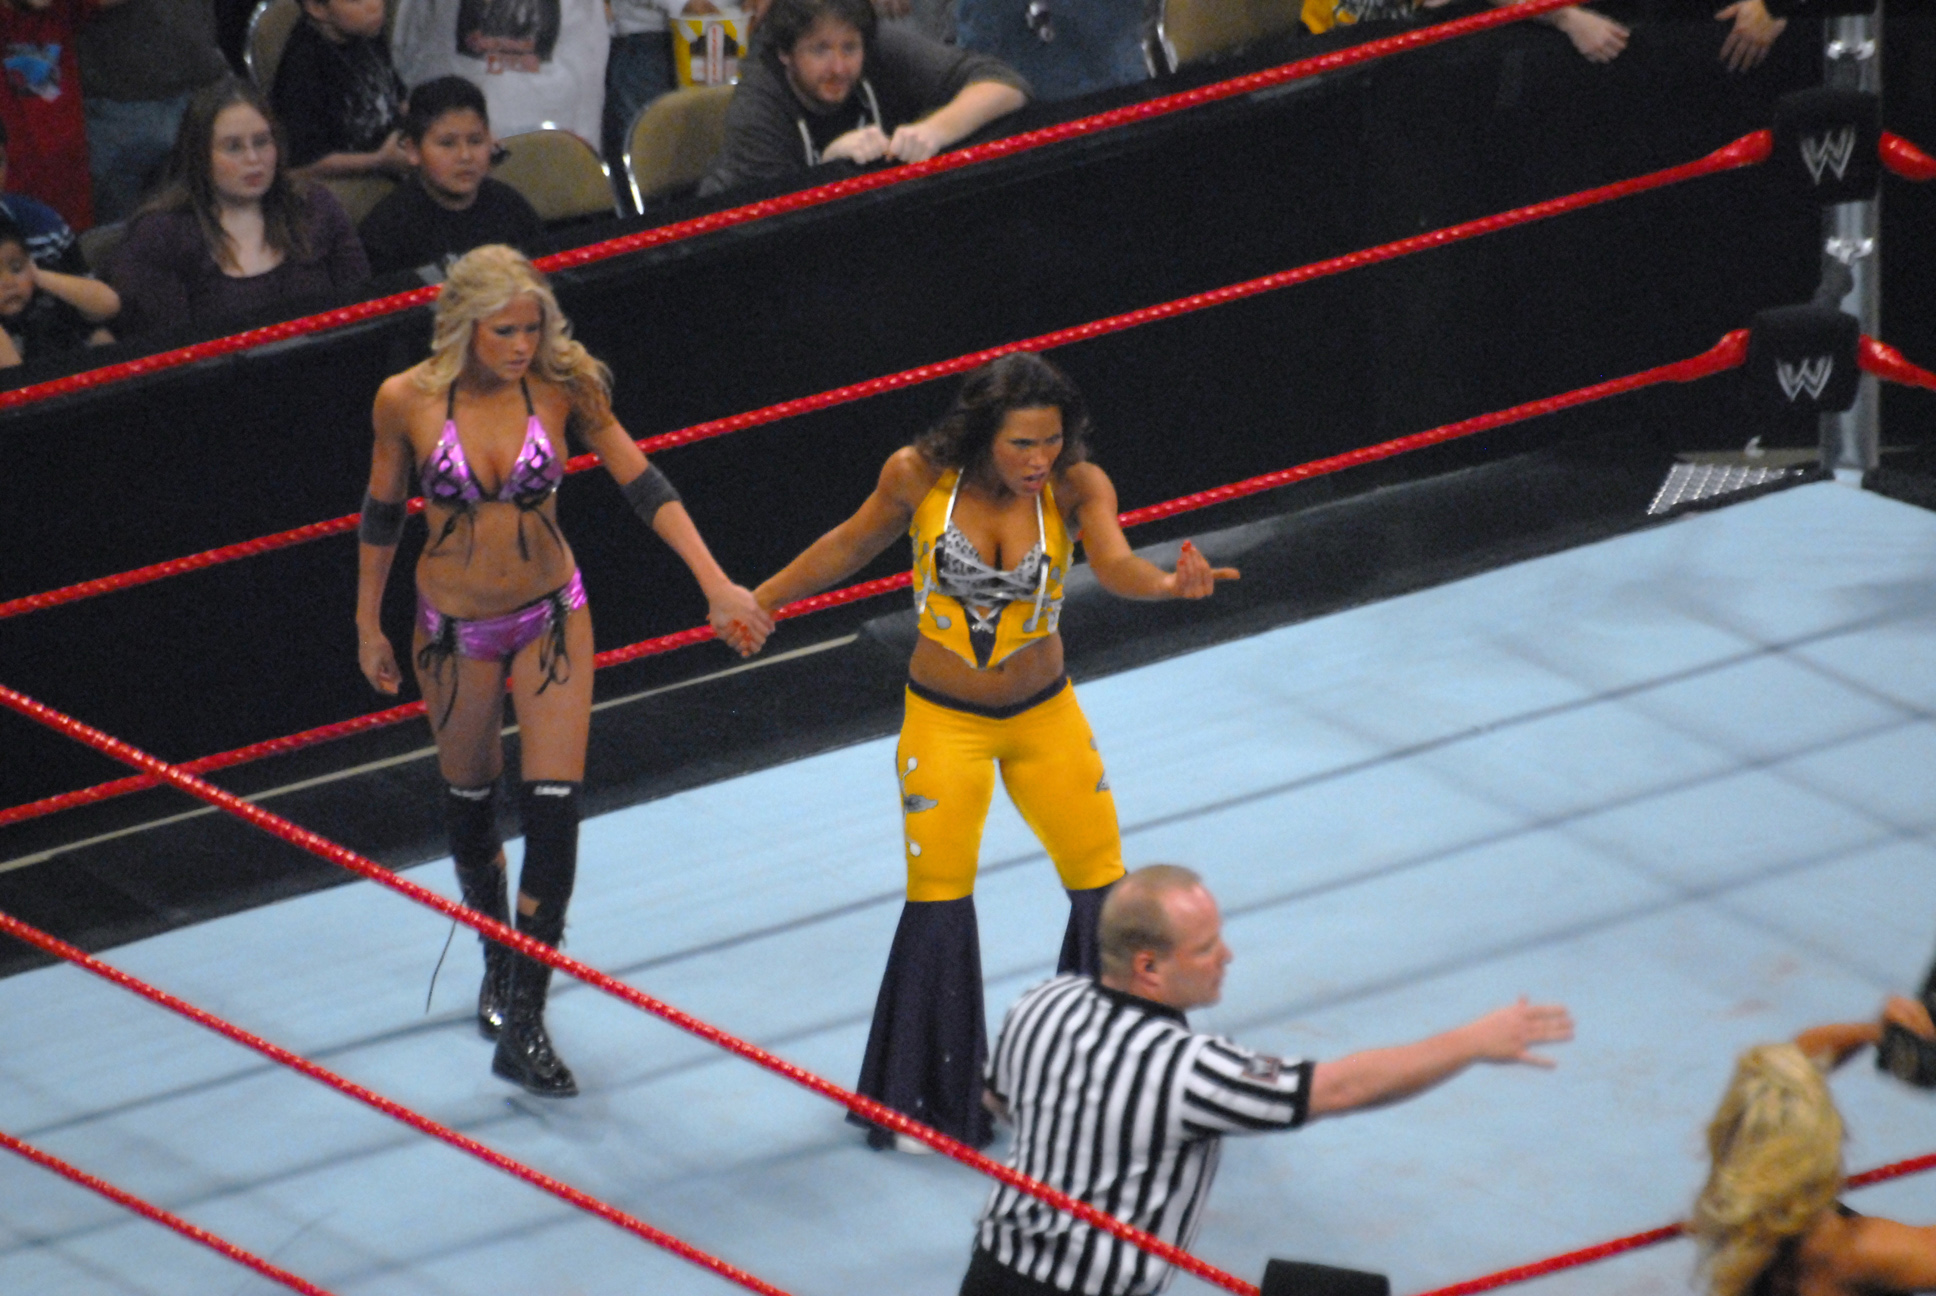 Description Mickie James and Kelly Kelly.jpg